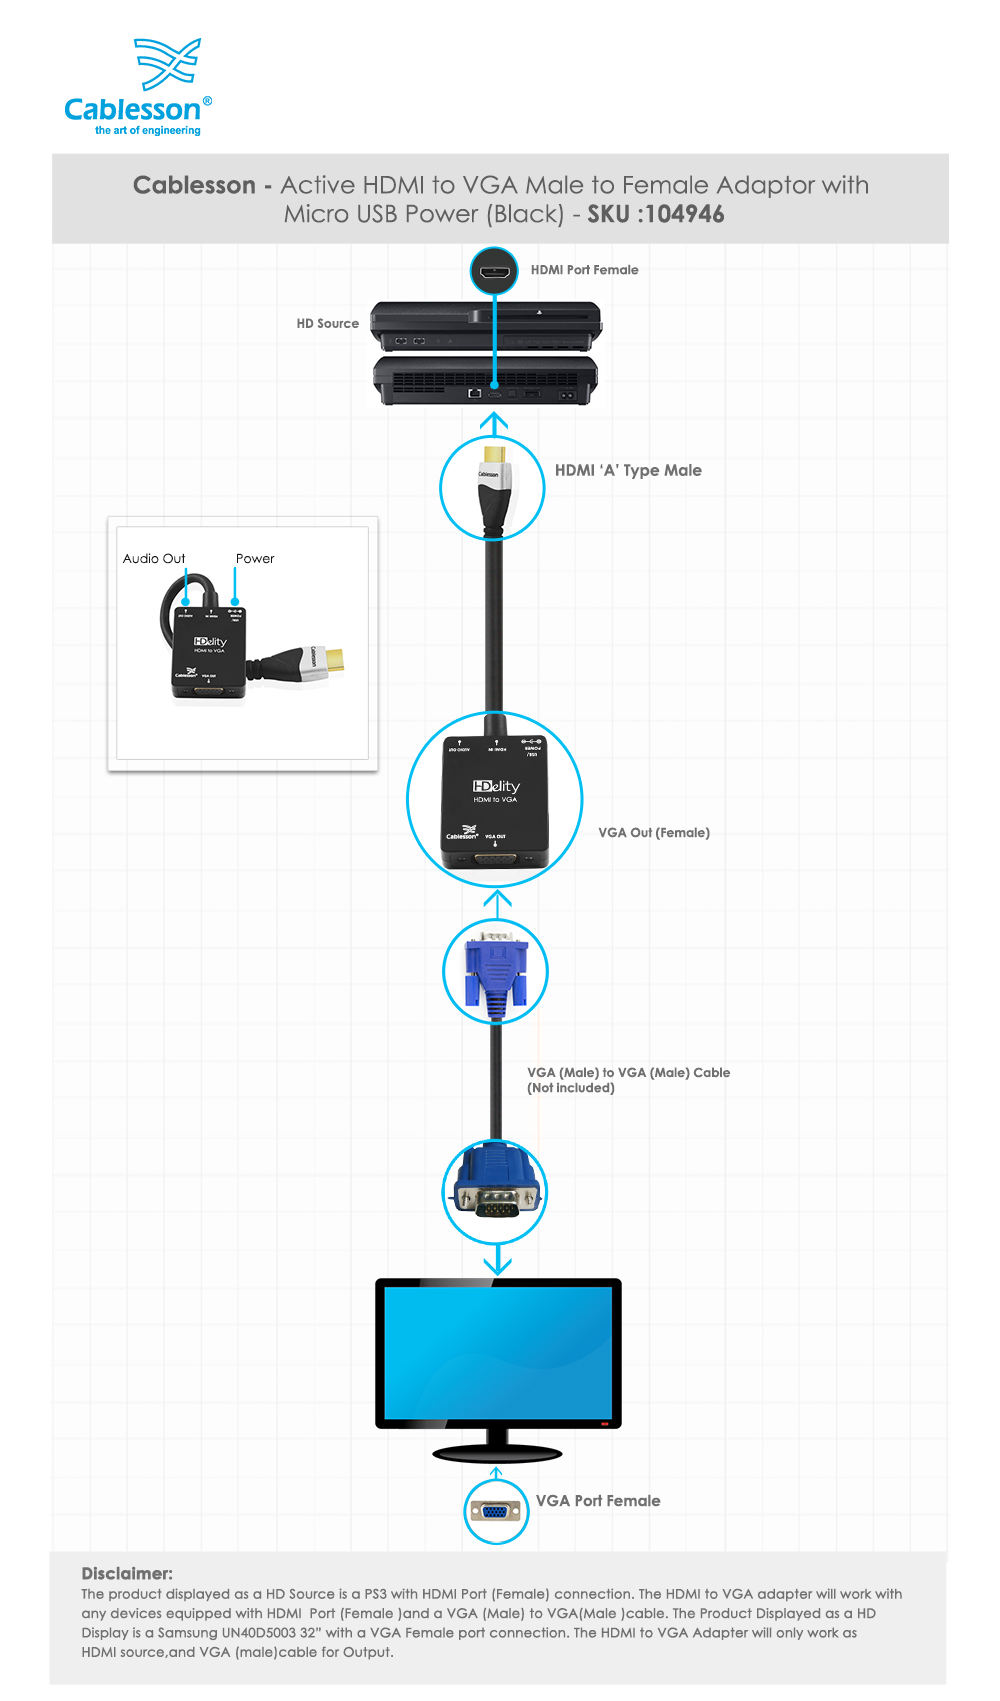 Active Hdmi To Vga Male Female Adapter With Micro Usb Power Wiring Diagram And Not Vice Versa When Using The Samsung Chromebook Macbook Pro Retina Display Please Plug In Included Cable